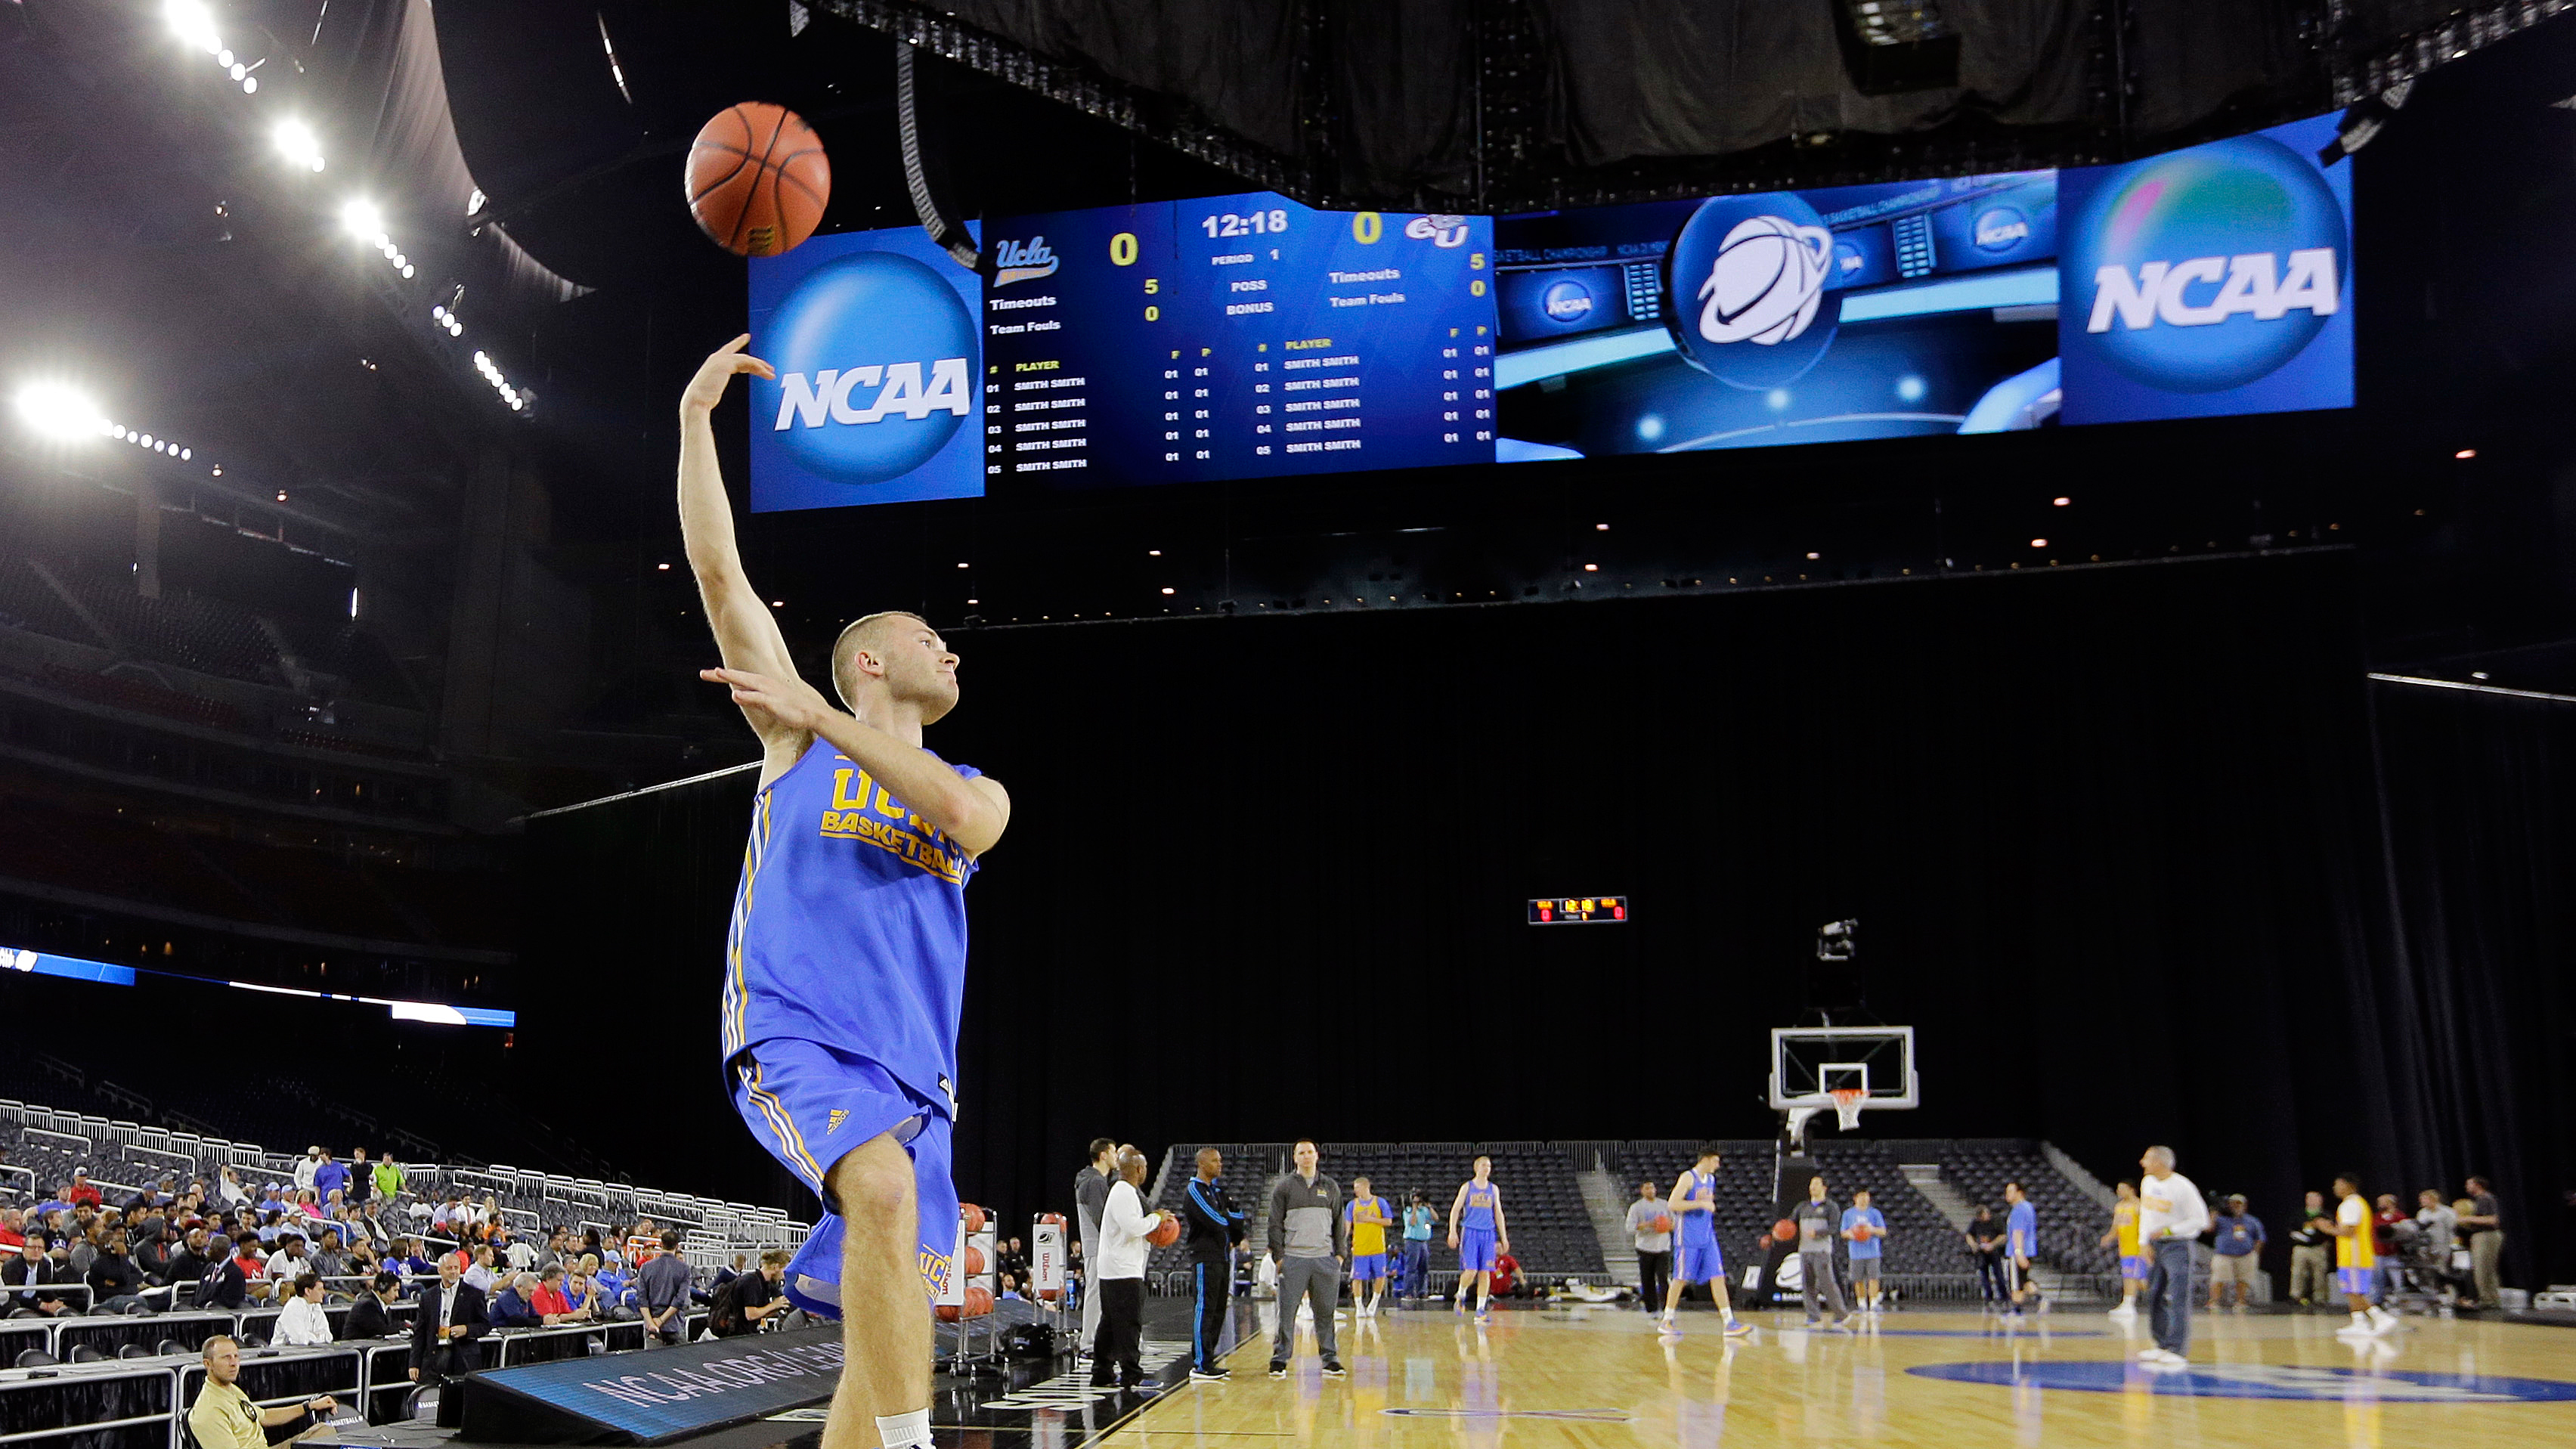 Bryce Alford